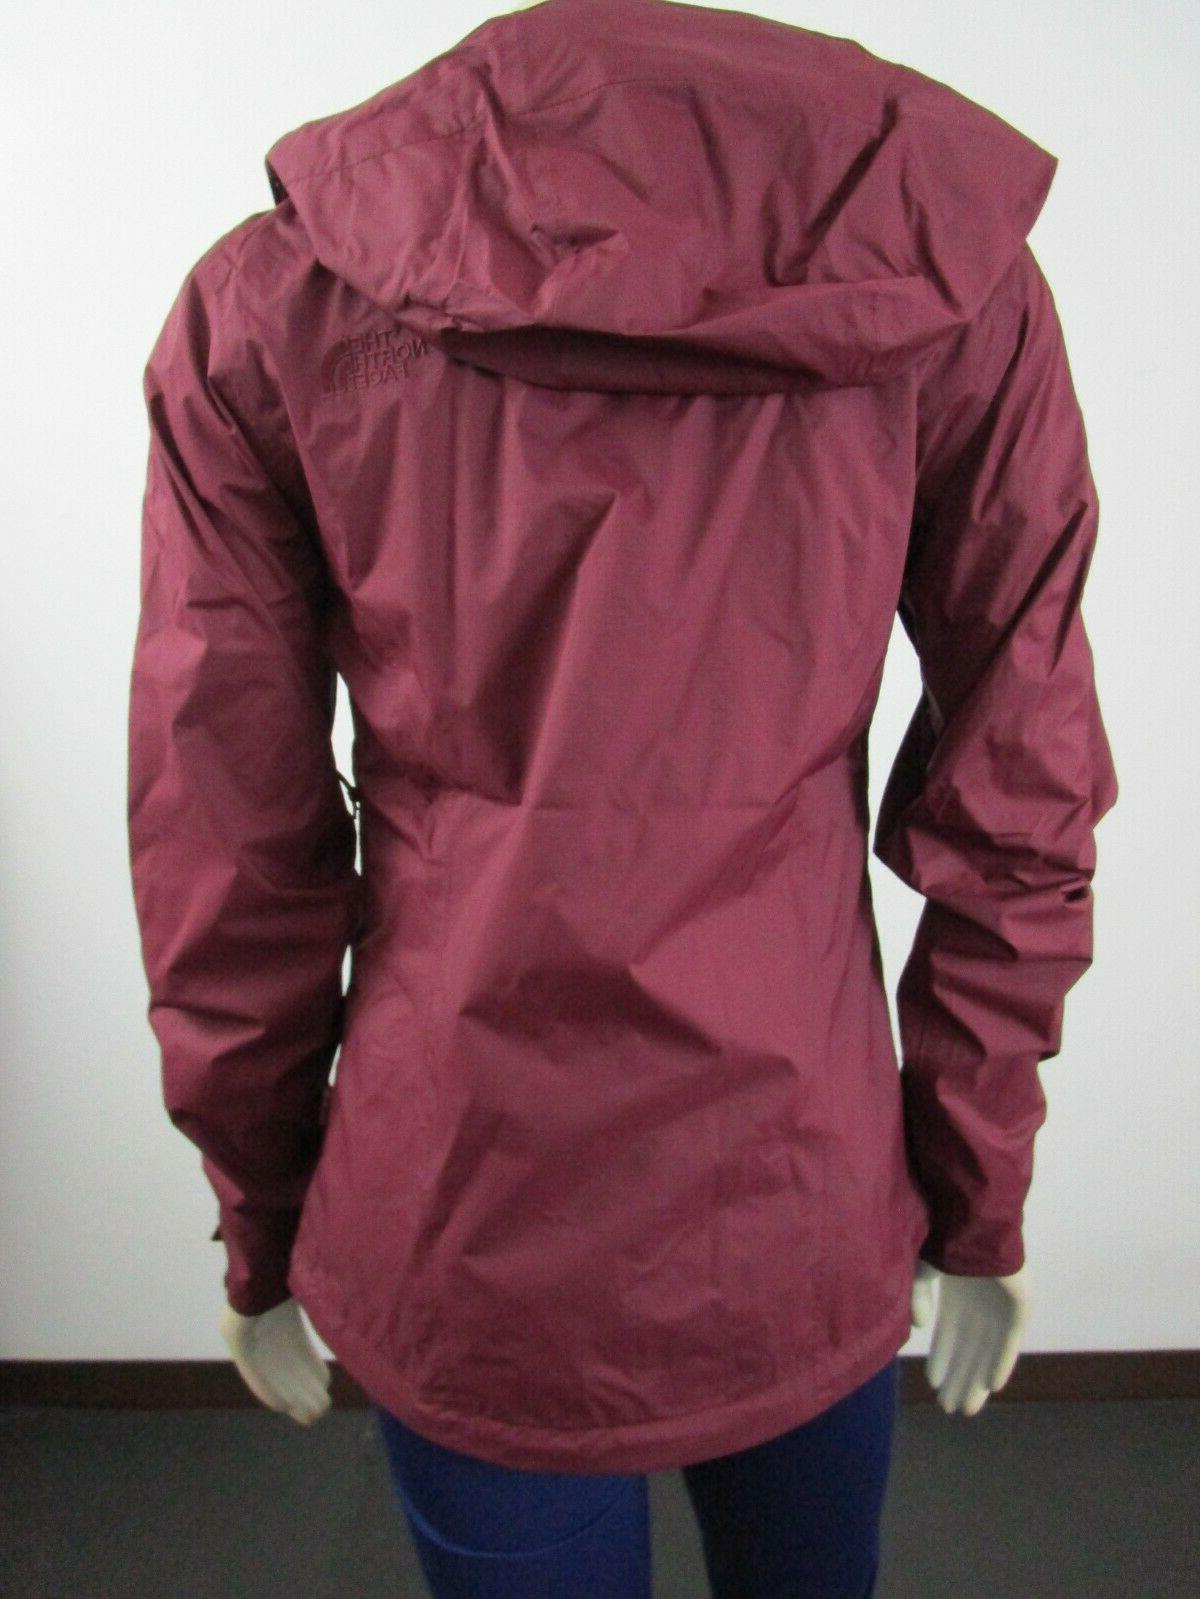 NWT The North Face Dryvent -